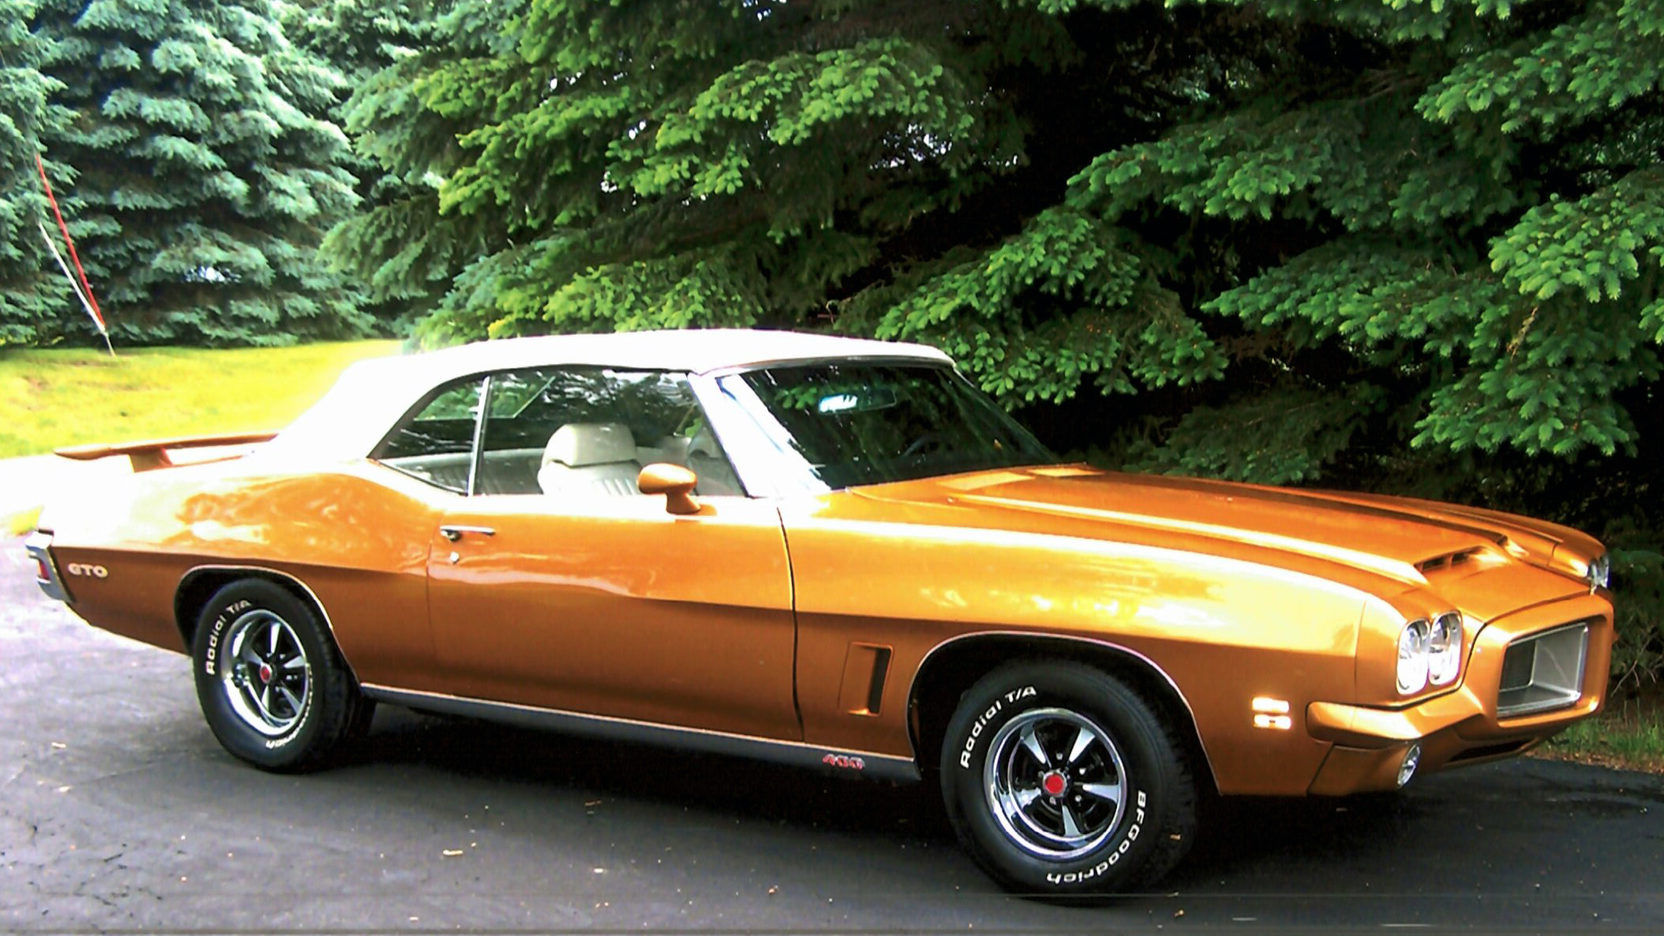 hight resolution of 1972 pontiac lemans sport gt convertible 7 full screen